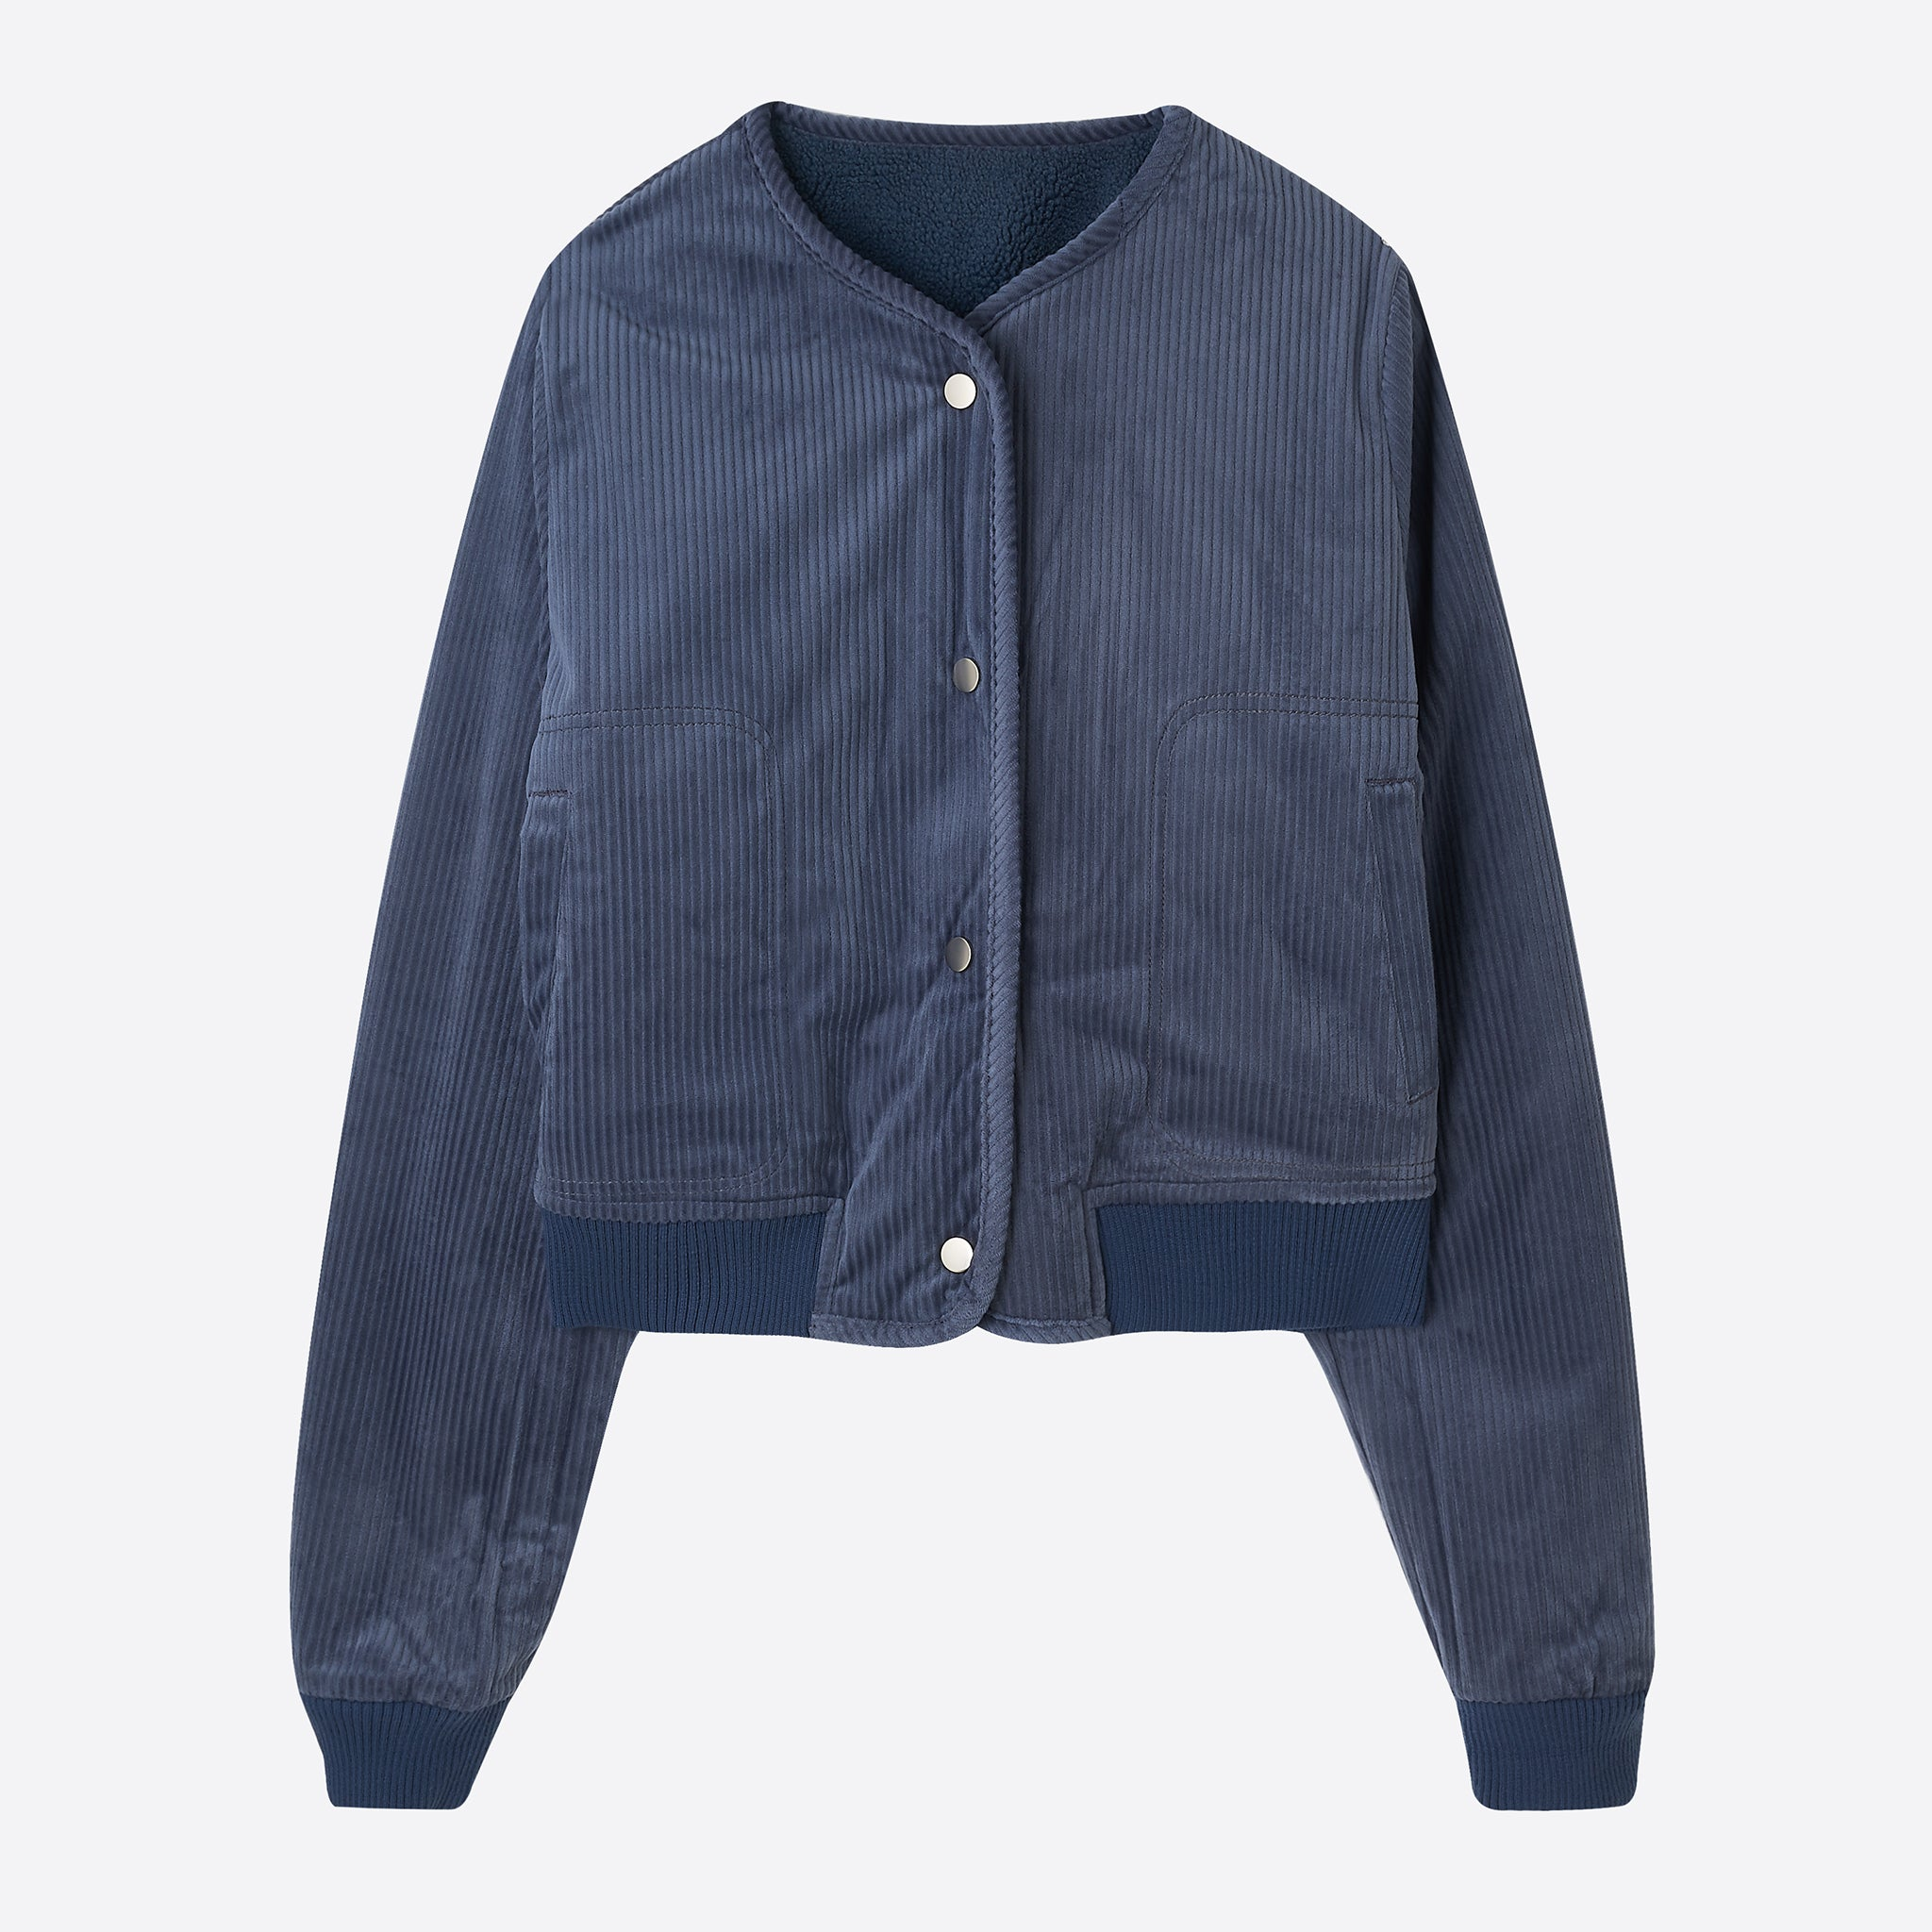 LF Markey Kit Jacket in Soft Navy